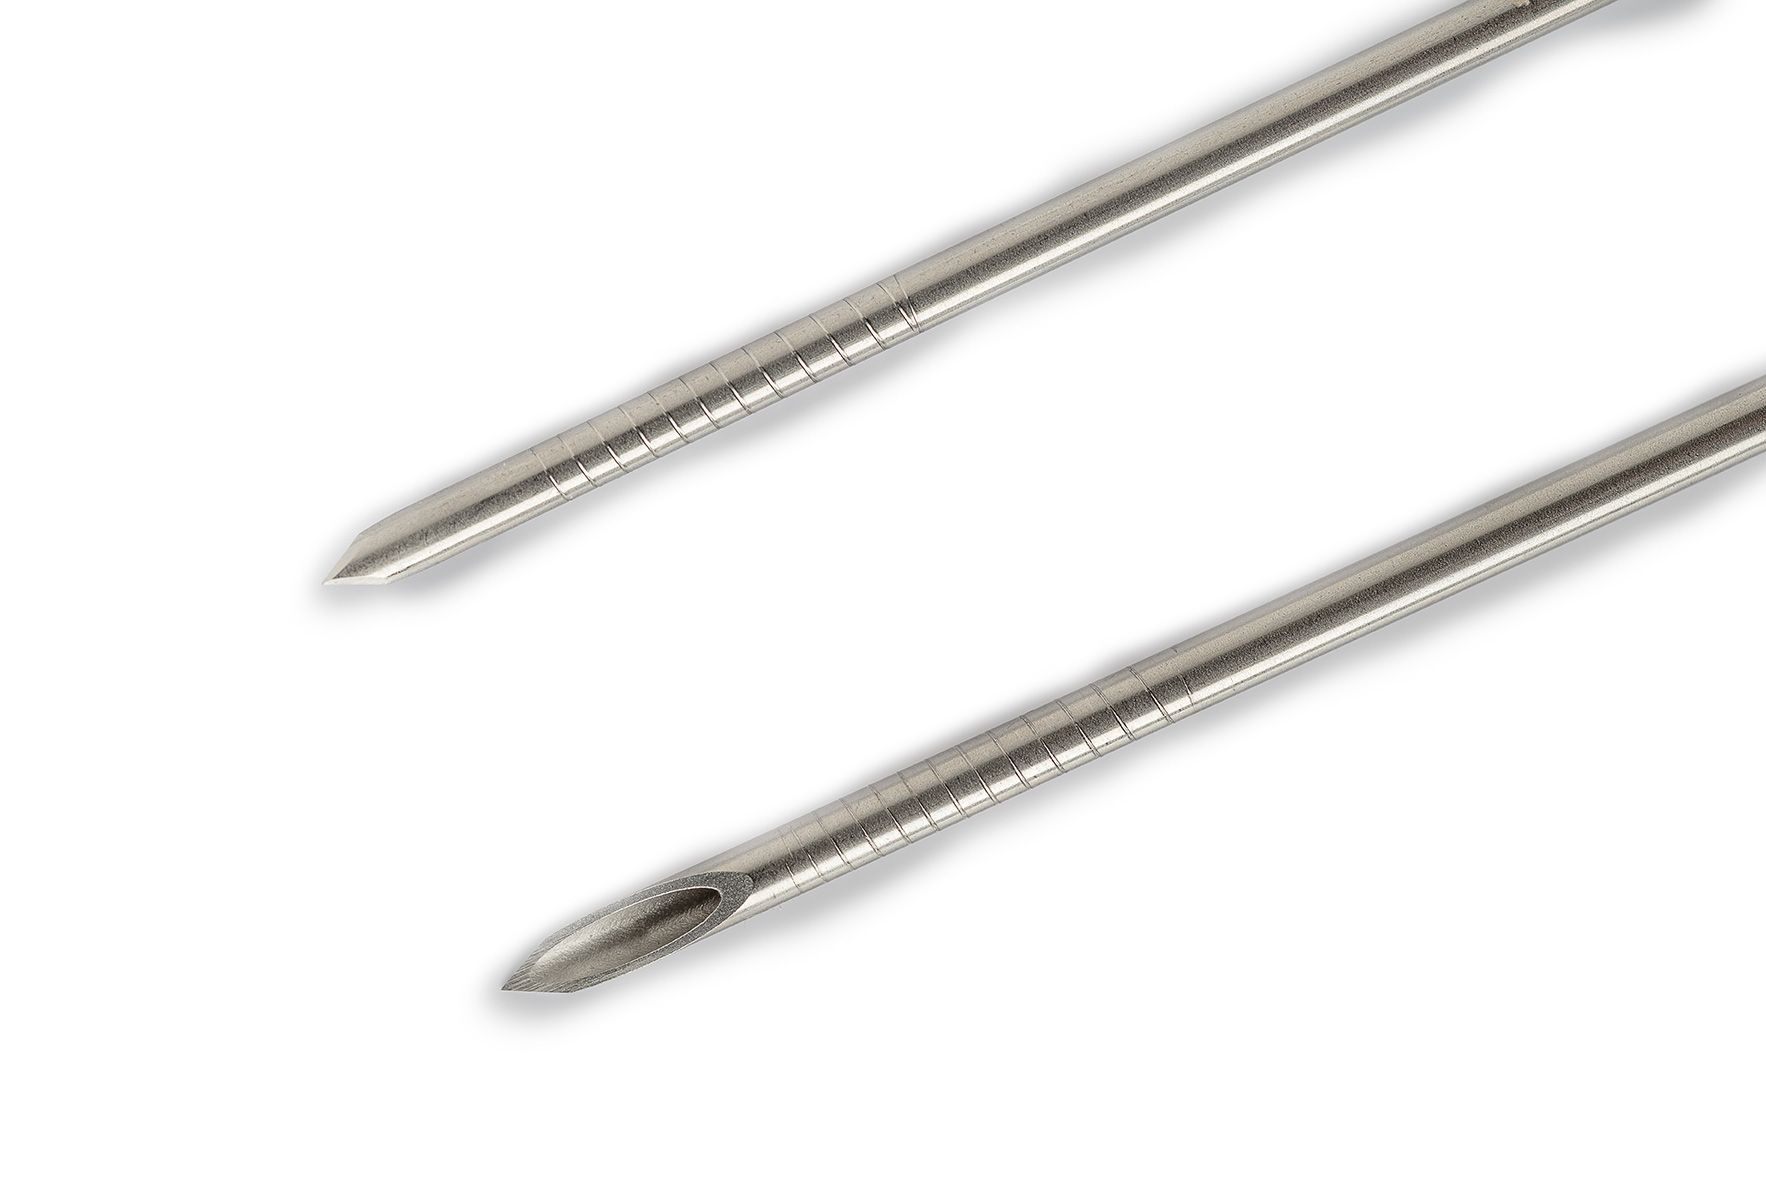 Opu needles for ovarian puncture